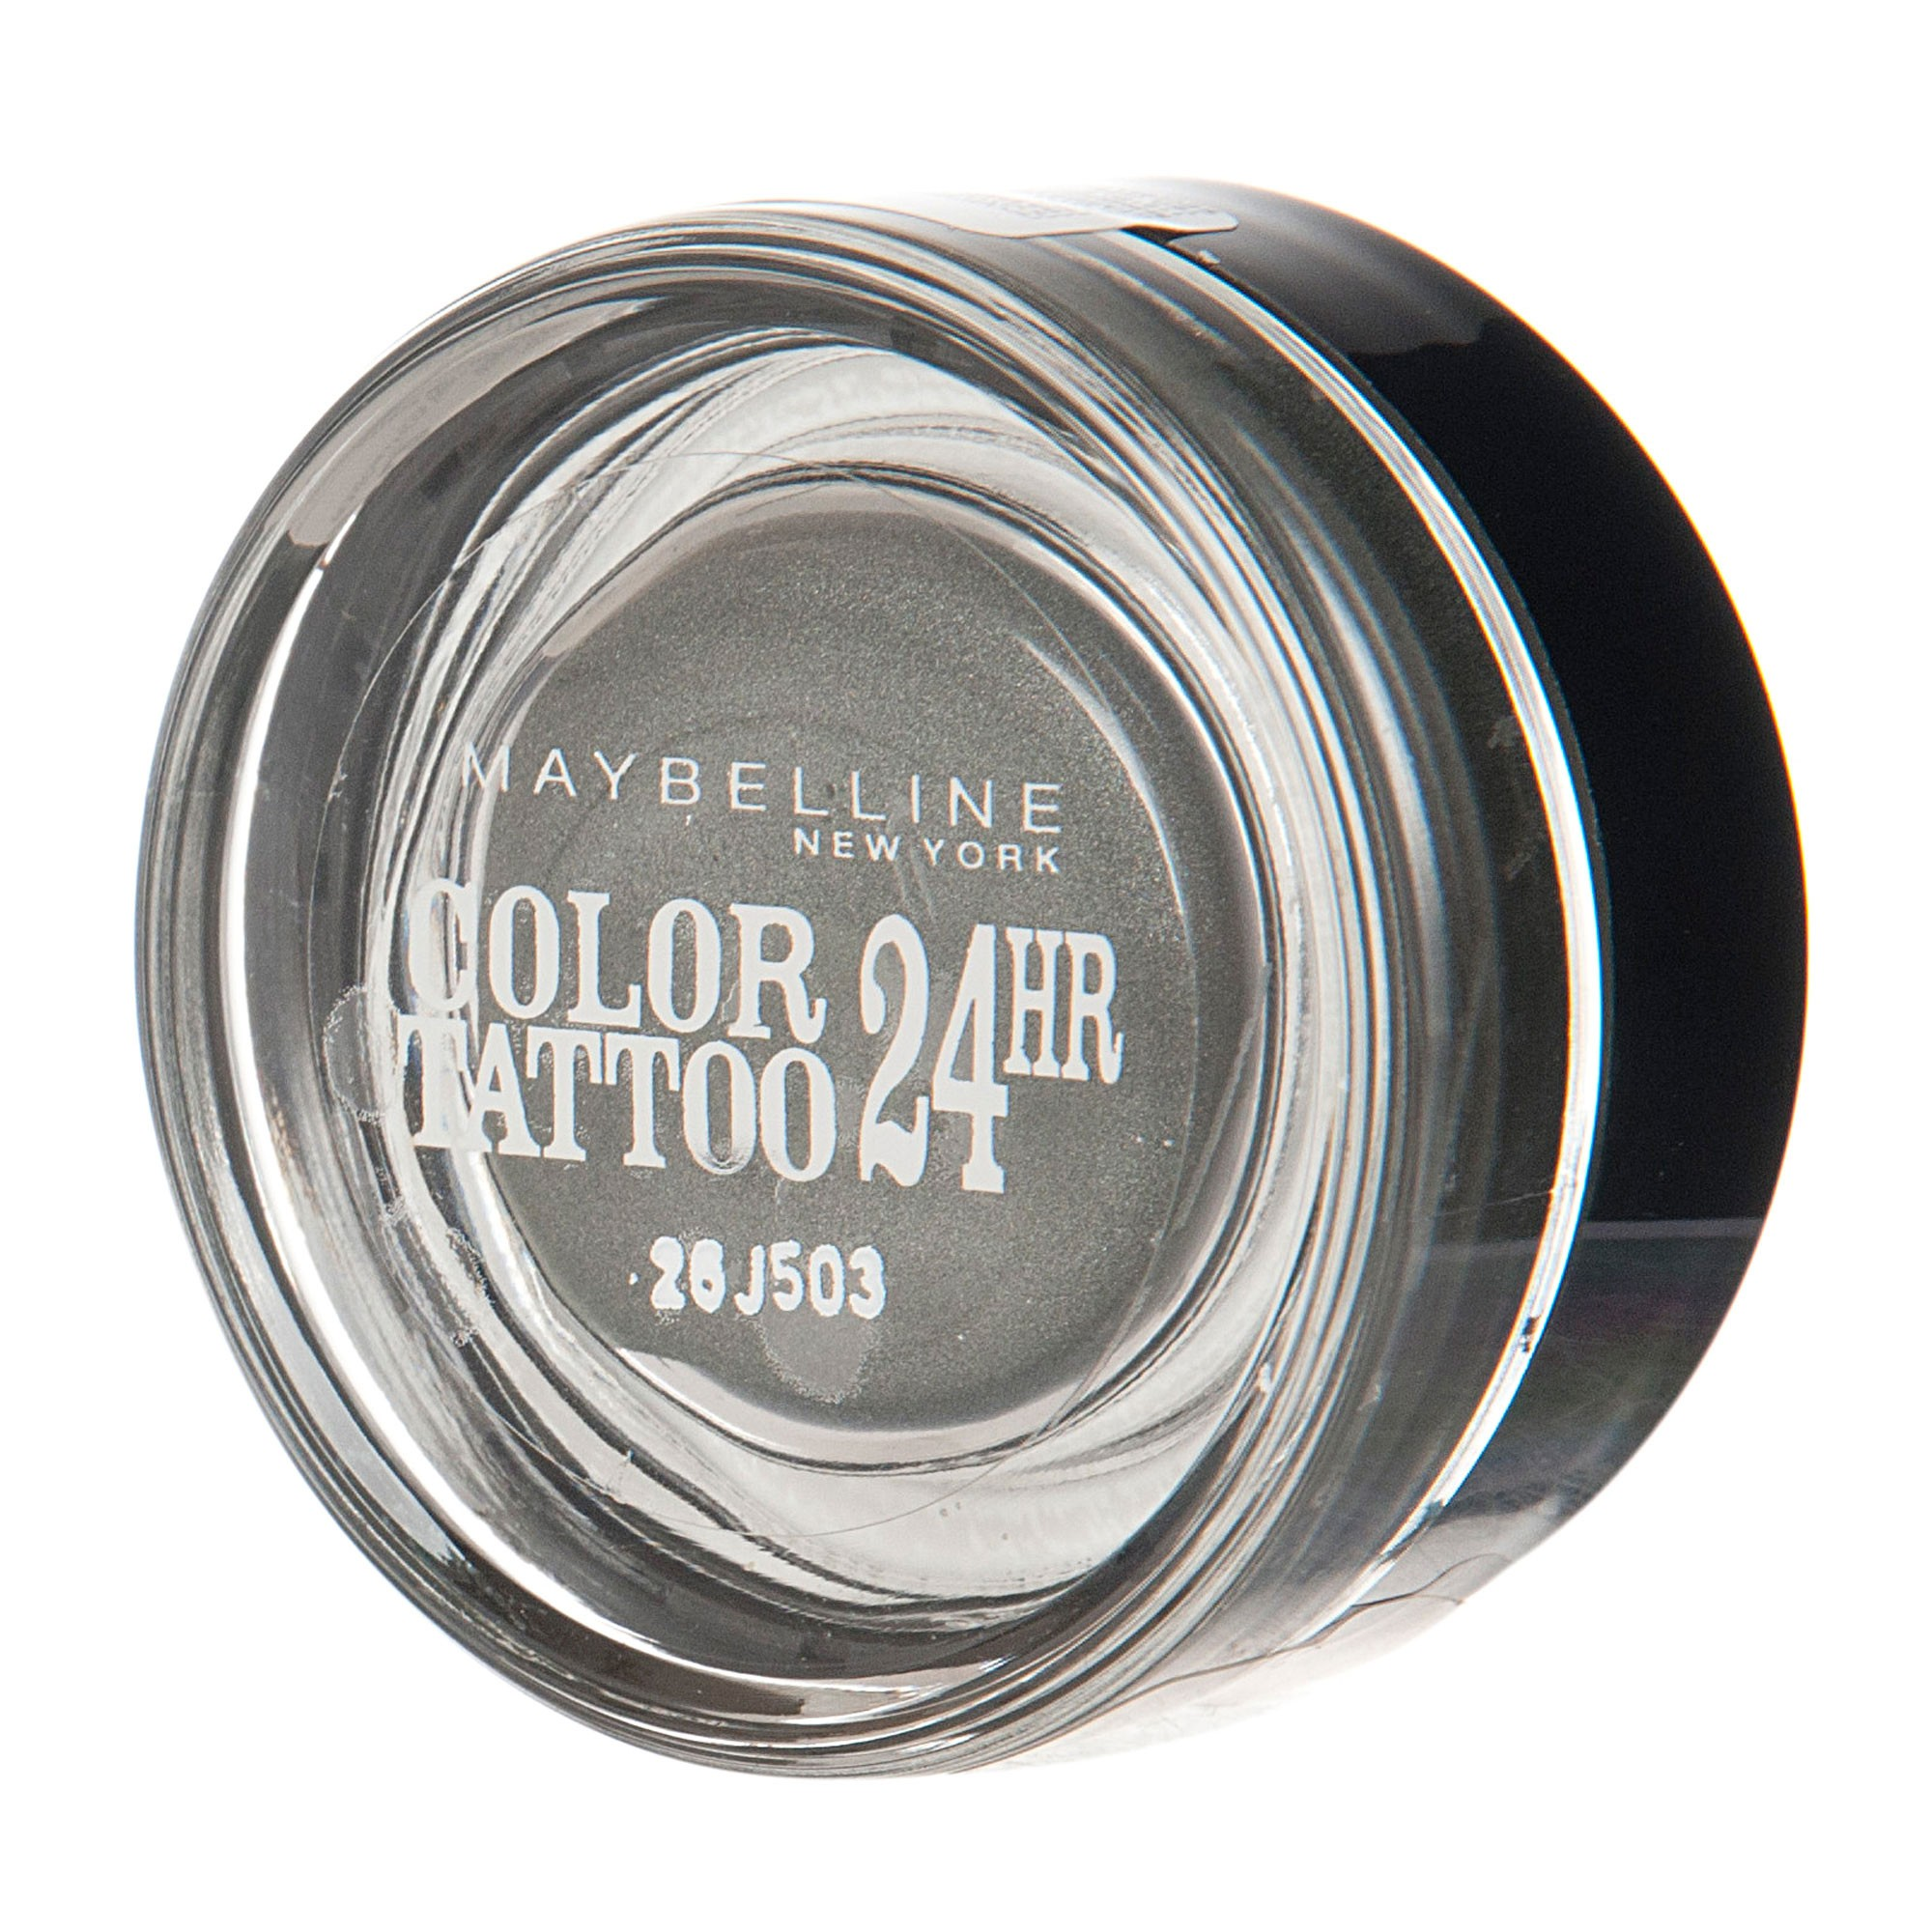 Тени для век Eye Studio Color Tattoo 24 h, Maybelline, 220 рублей